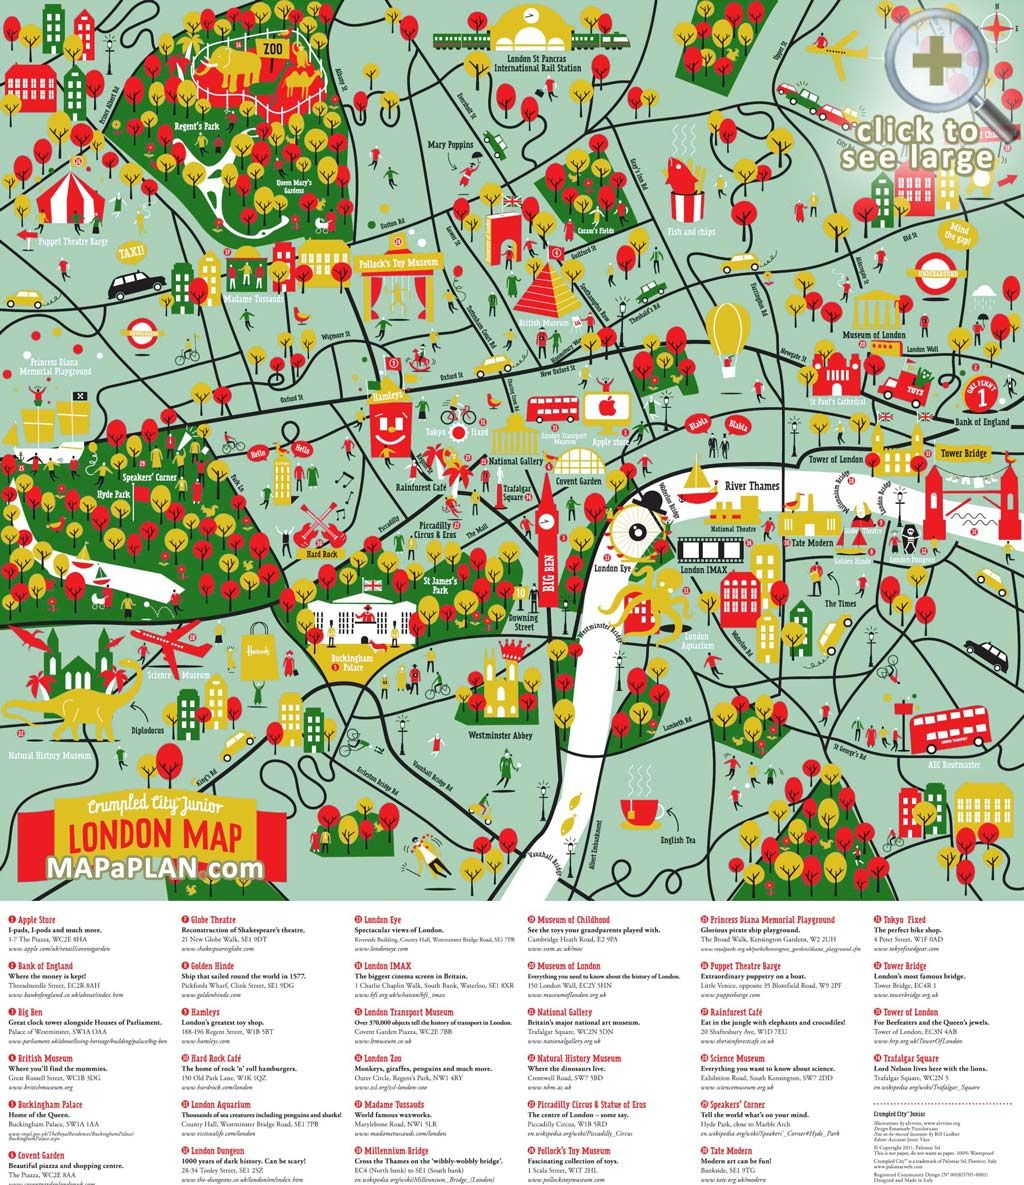 London Map Printable.London Maps Top Tourist Attractions Free Printable City Maps